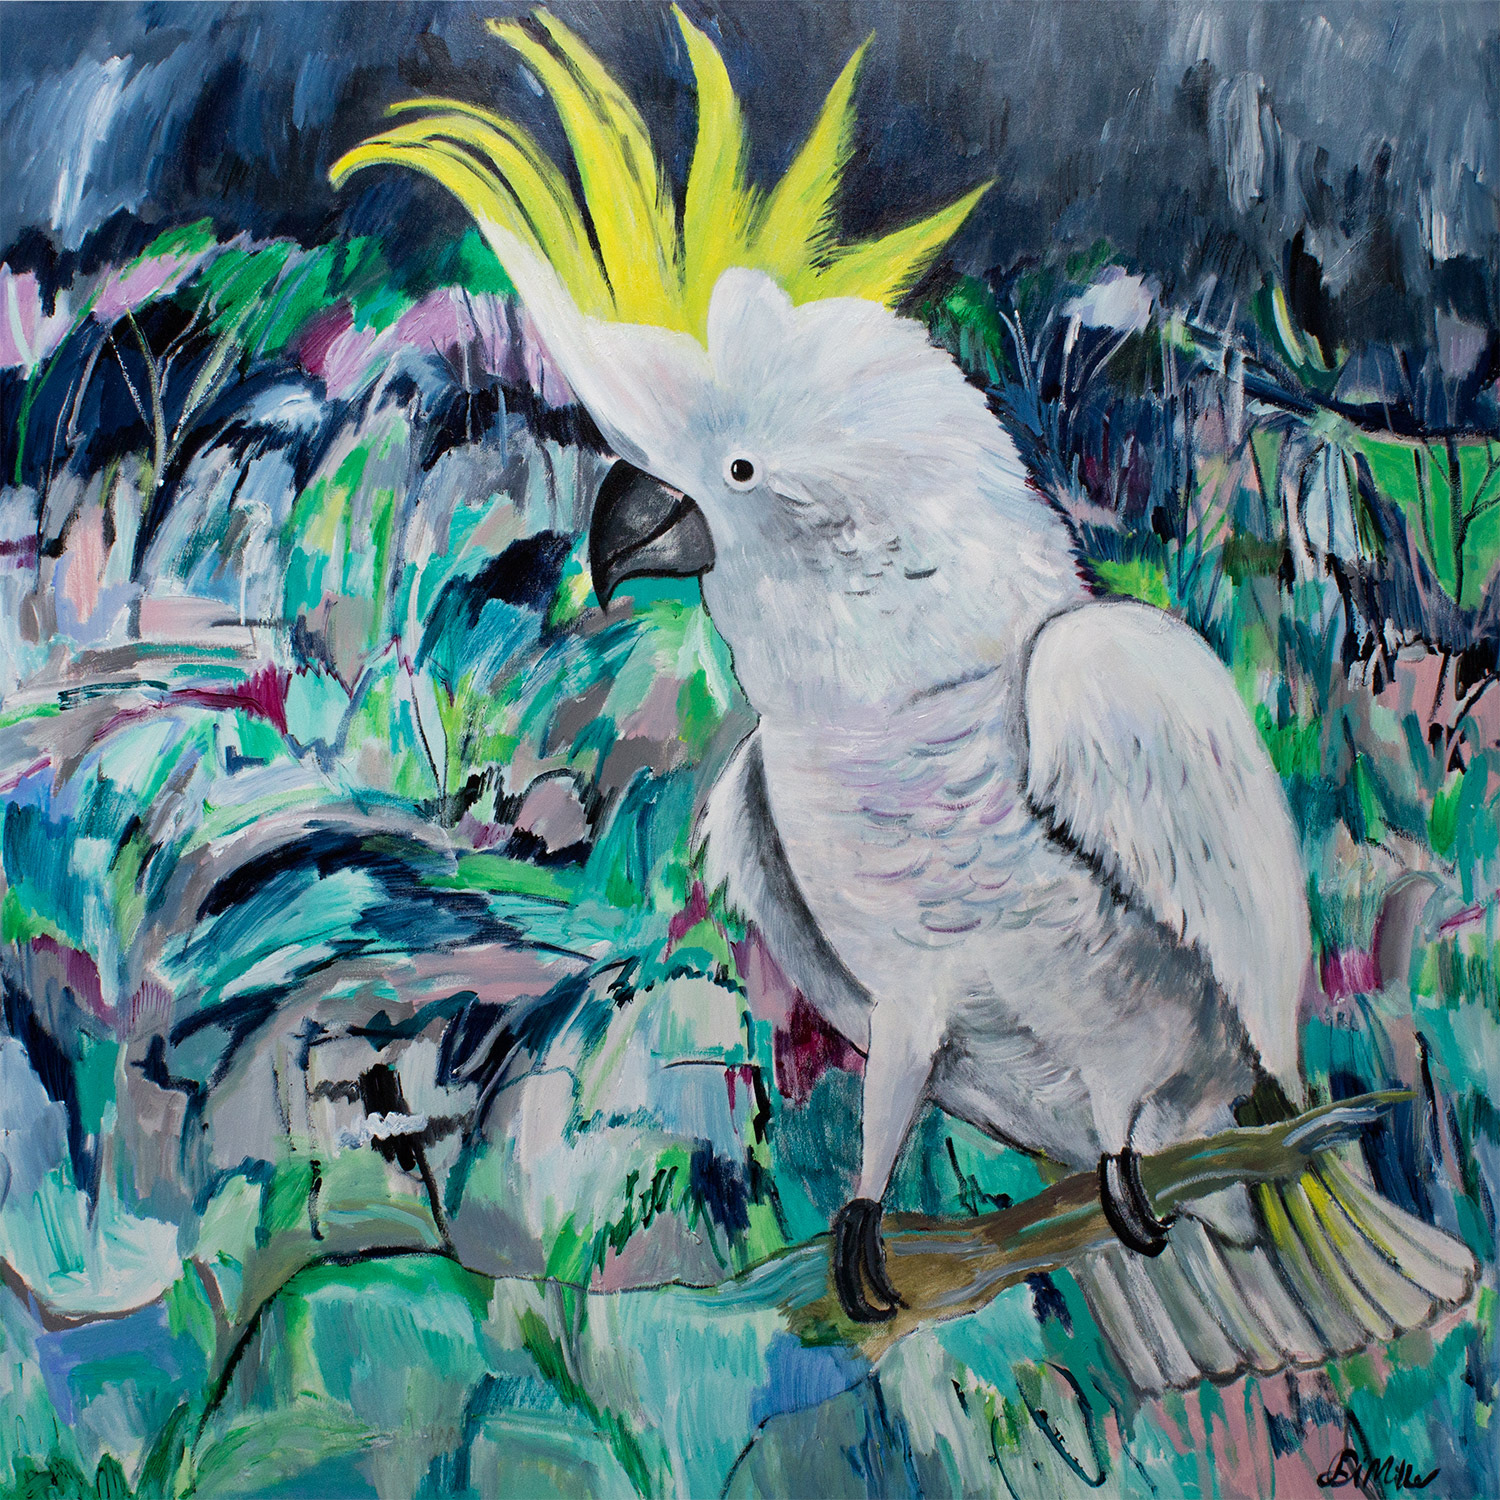 And the white cockatoo that sits alone in this piece, watching his friends down the hallway!